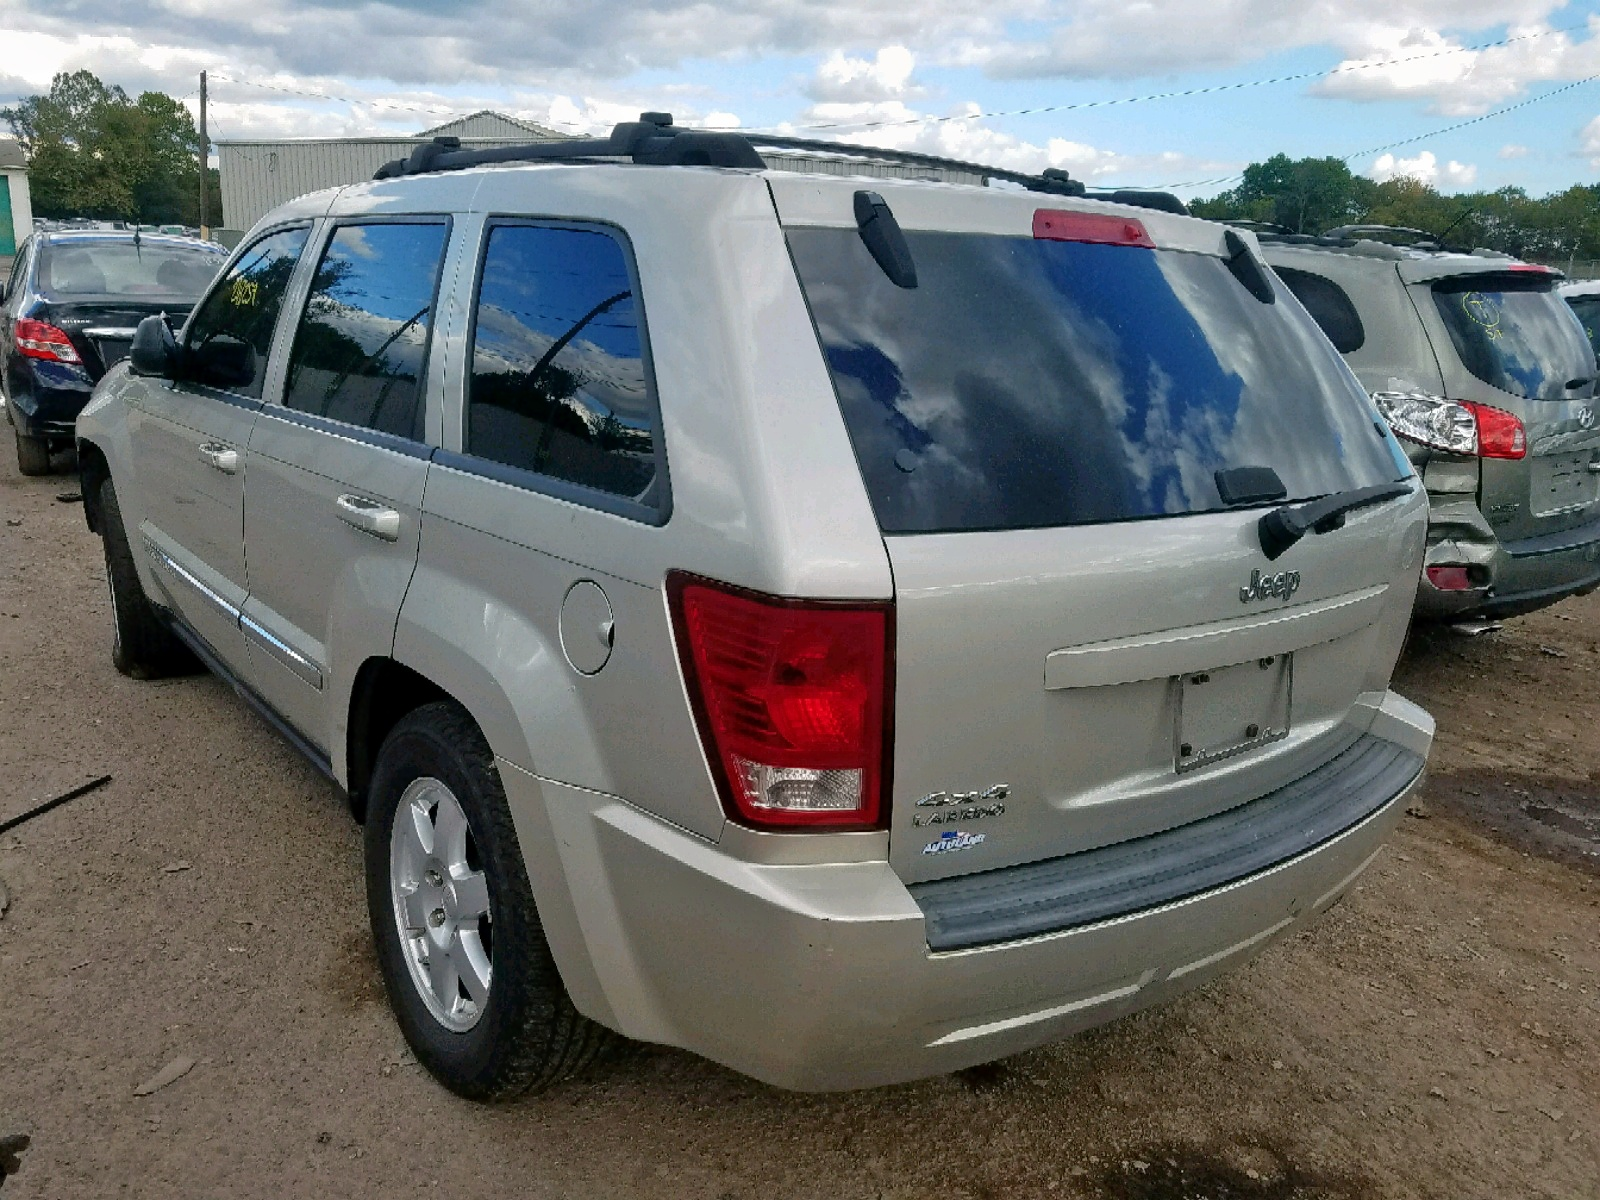 2010 Jeep Grand Cher 3.7L [Angle] View